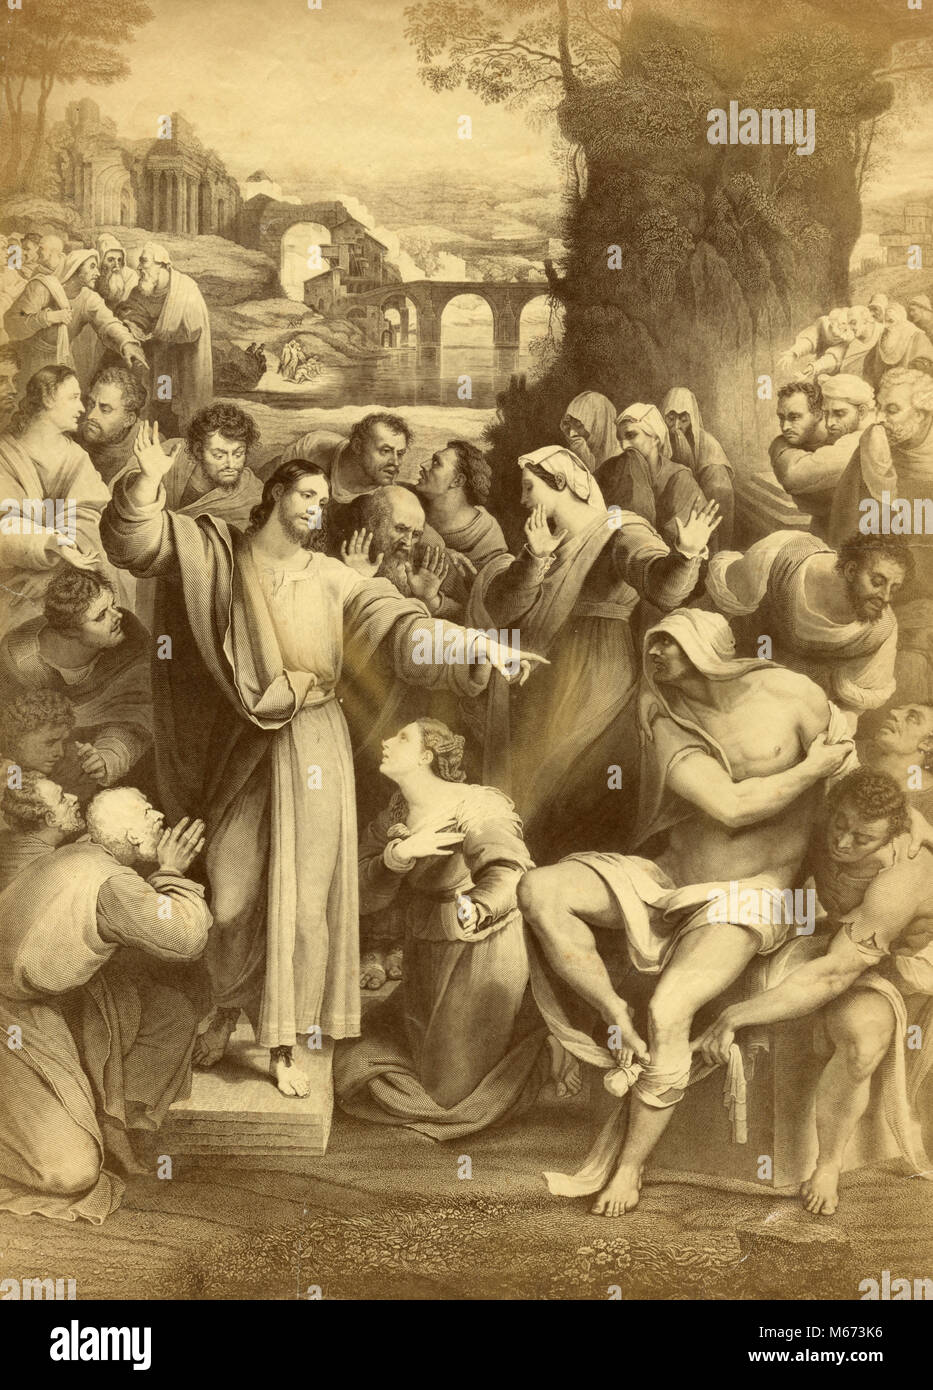 The raising of Lazarus or the resurrection of Lazarus, painting - Stock Image